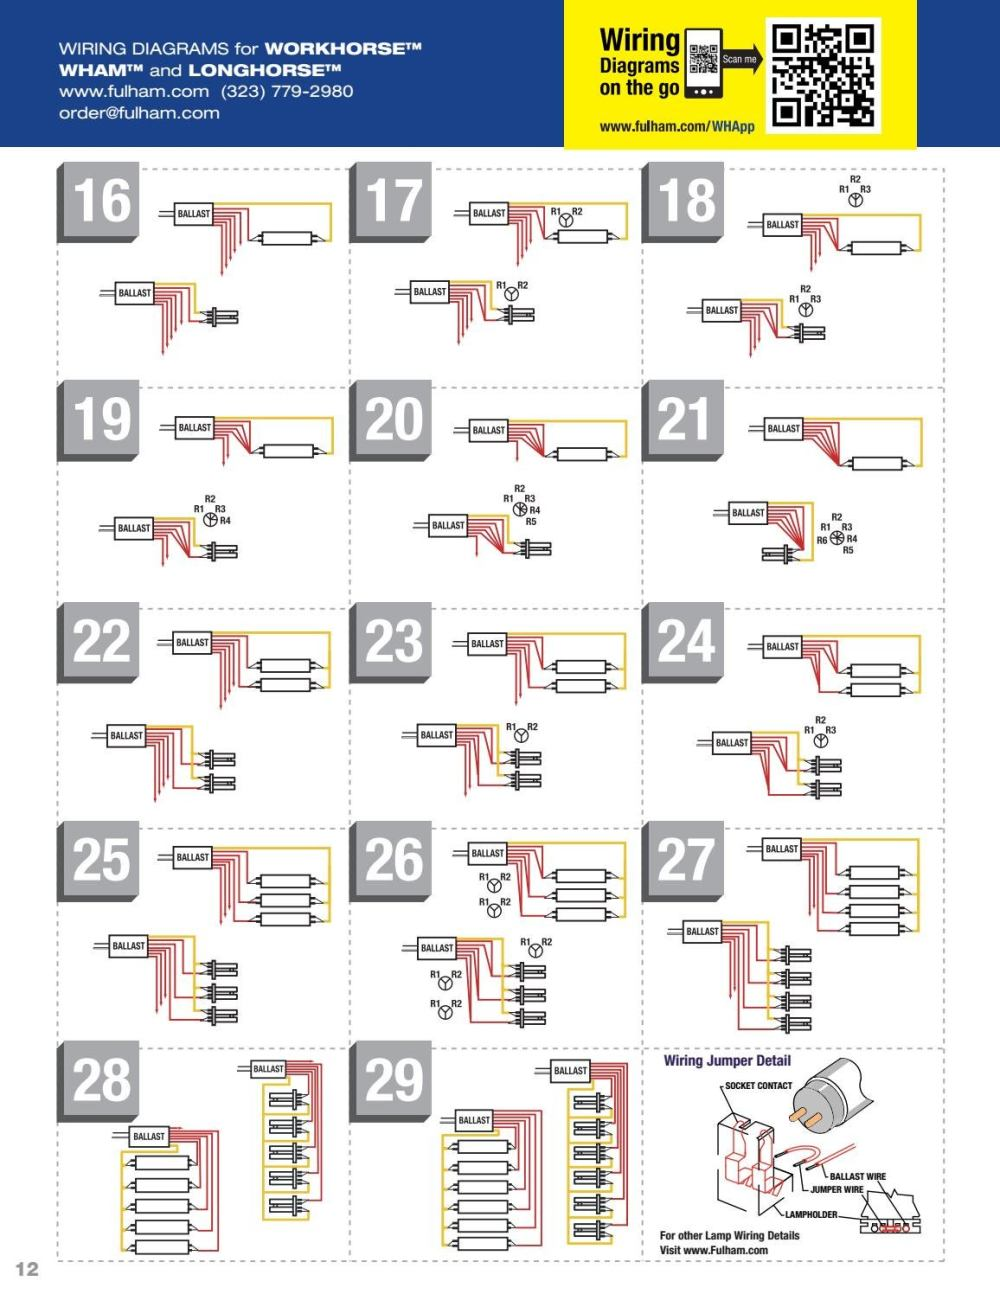 medium resolution of fulham wiring diagrams lamp compatibility chart by fulham co inc issuu